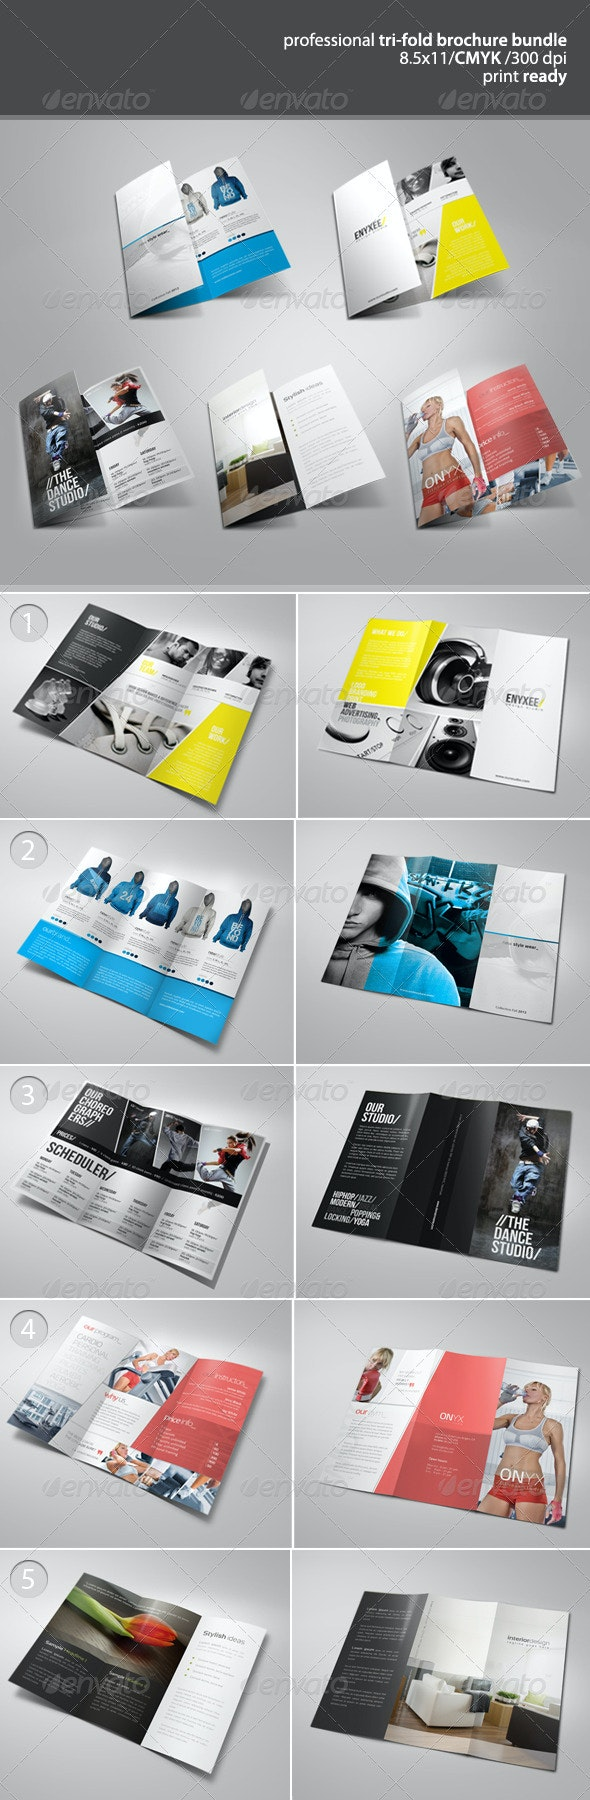 Tri-Fold Brochure Bundle 2 - Brochures Print Templates